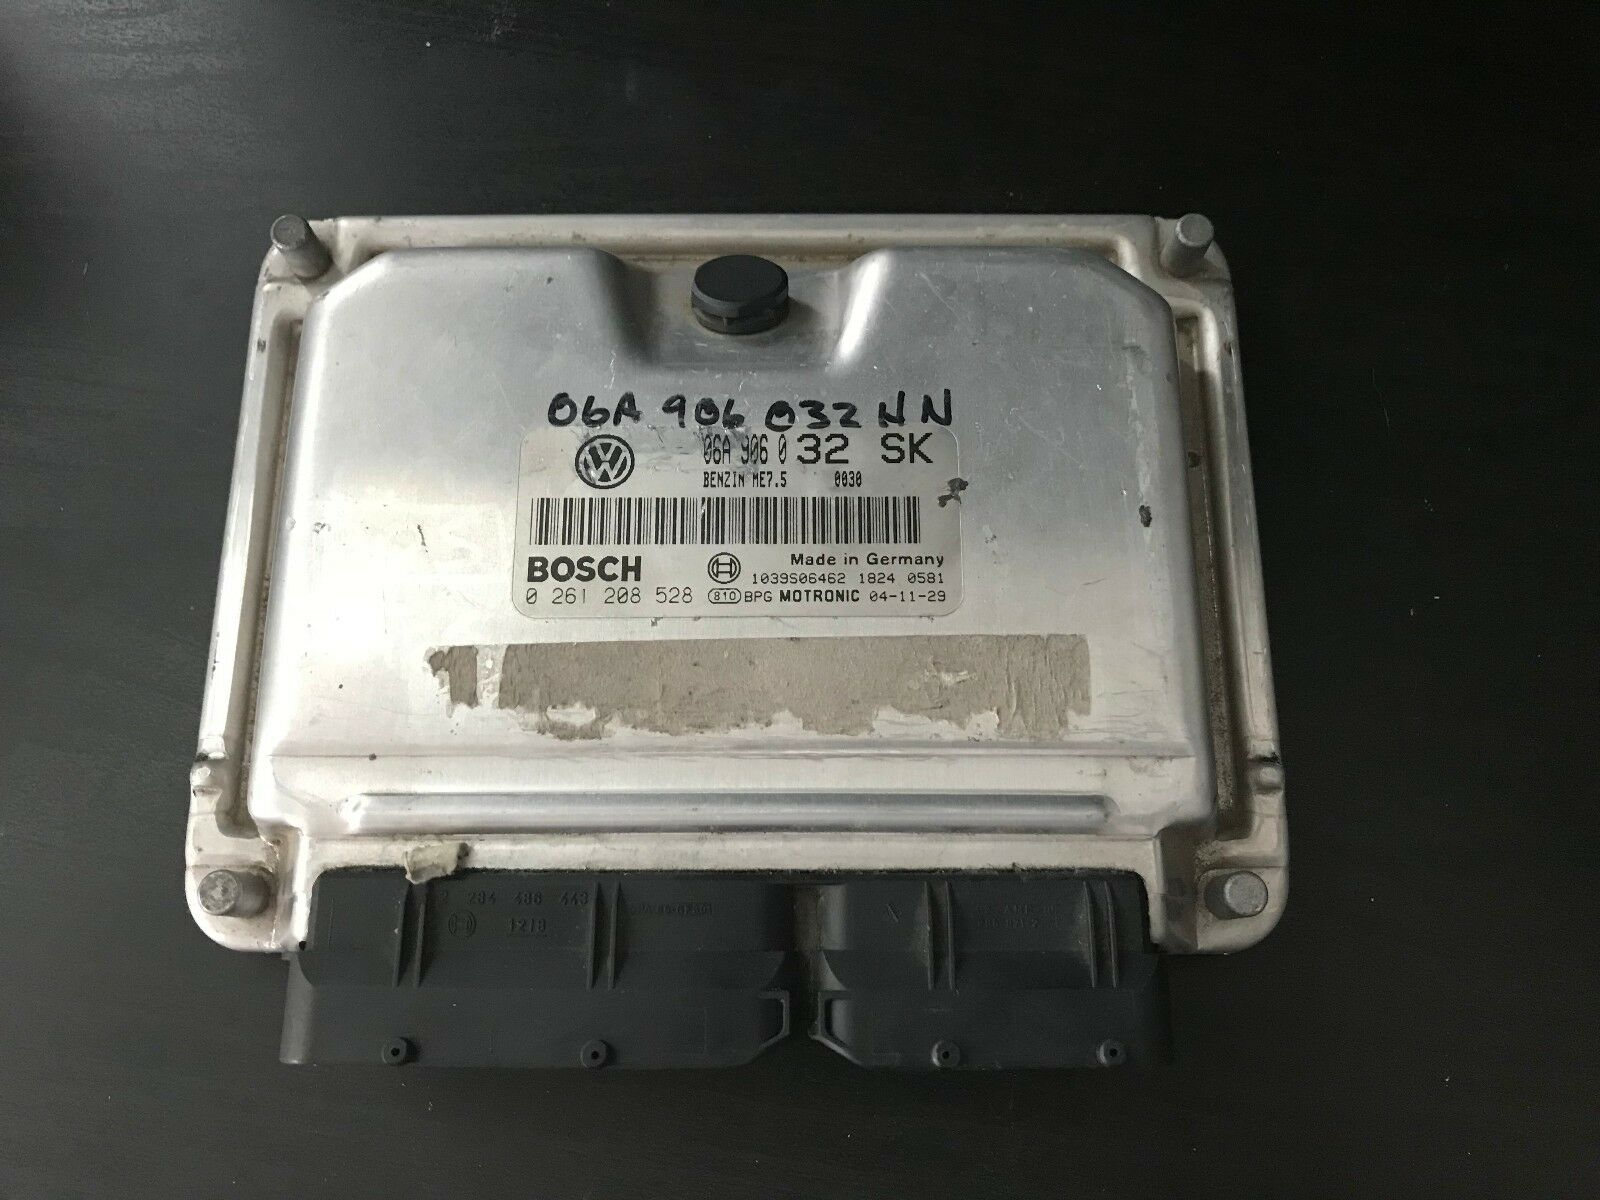 Used Volkswagen Computers And Cruise Control Parts For Sale Page 8 2009 Routan Fuse Box 18t Tuned Complete Ecu Vw Golf Gti Jetta Beetle 250hp